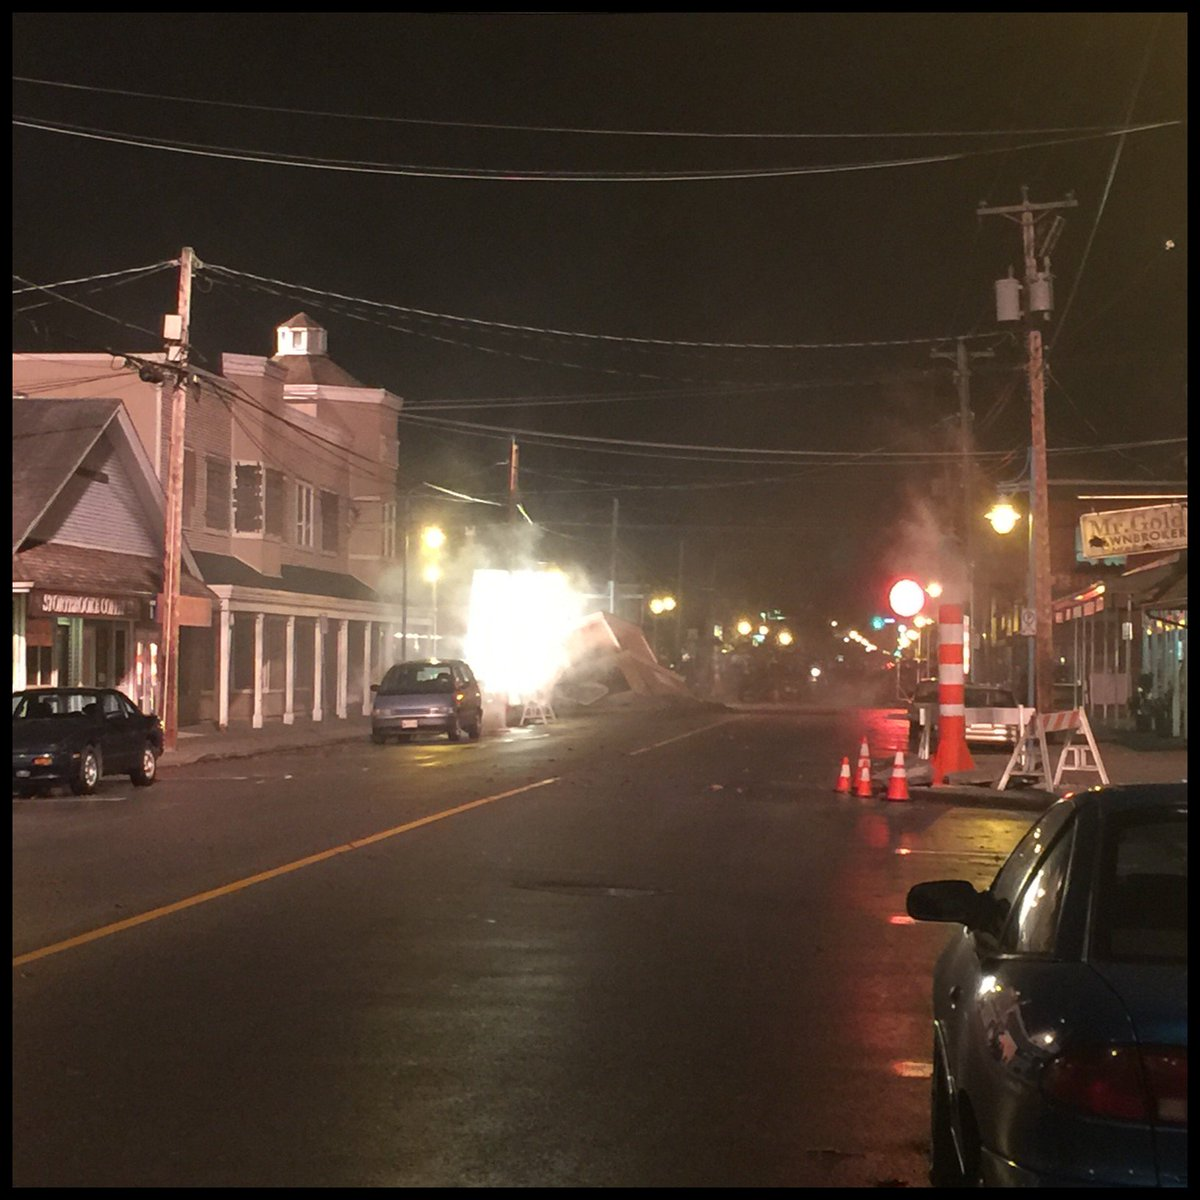 #OUaT filming once again in #Steveston. This time with smoke machines! #OnceUponATime https://t.co/Mu7e8SyOO4 https://t.co/r1ACmXqnD9